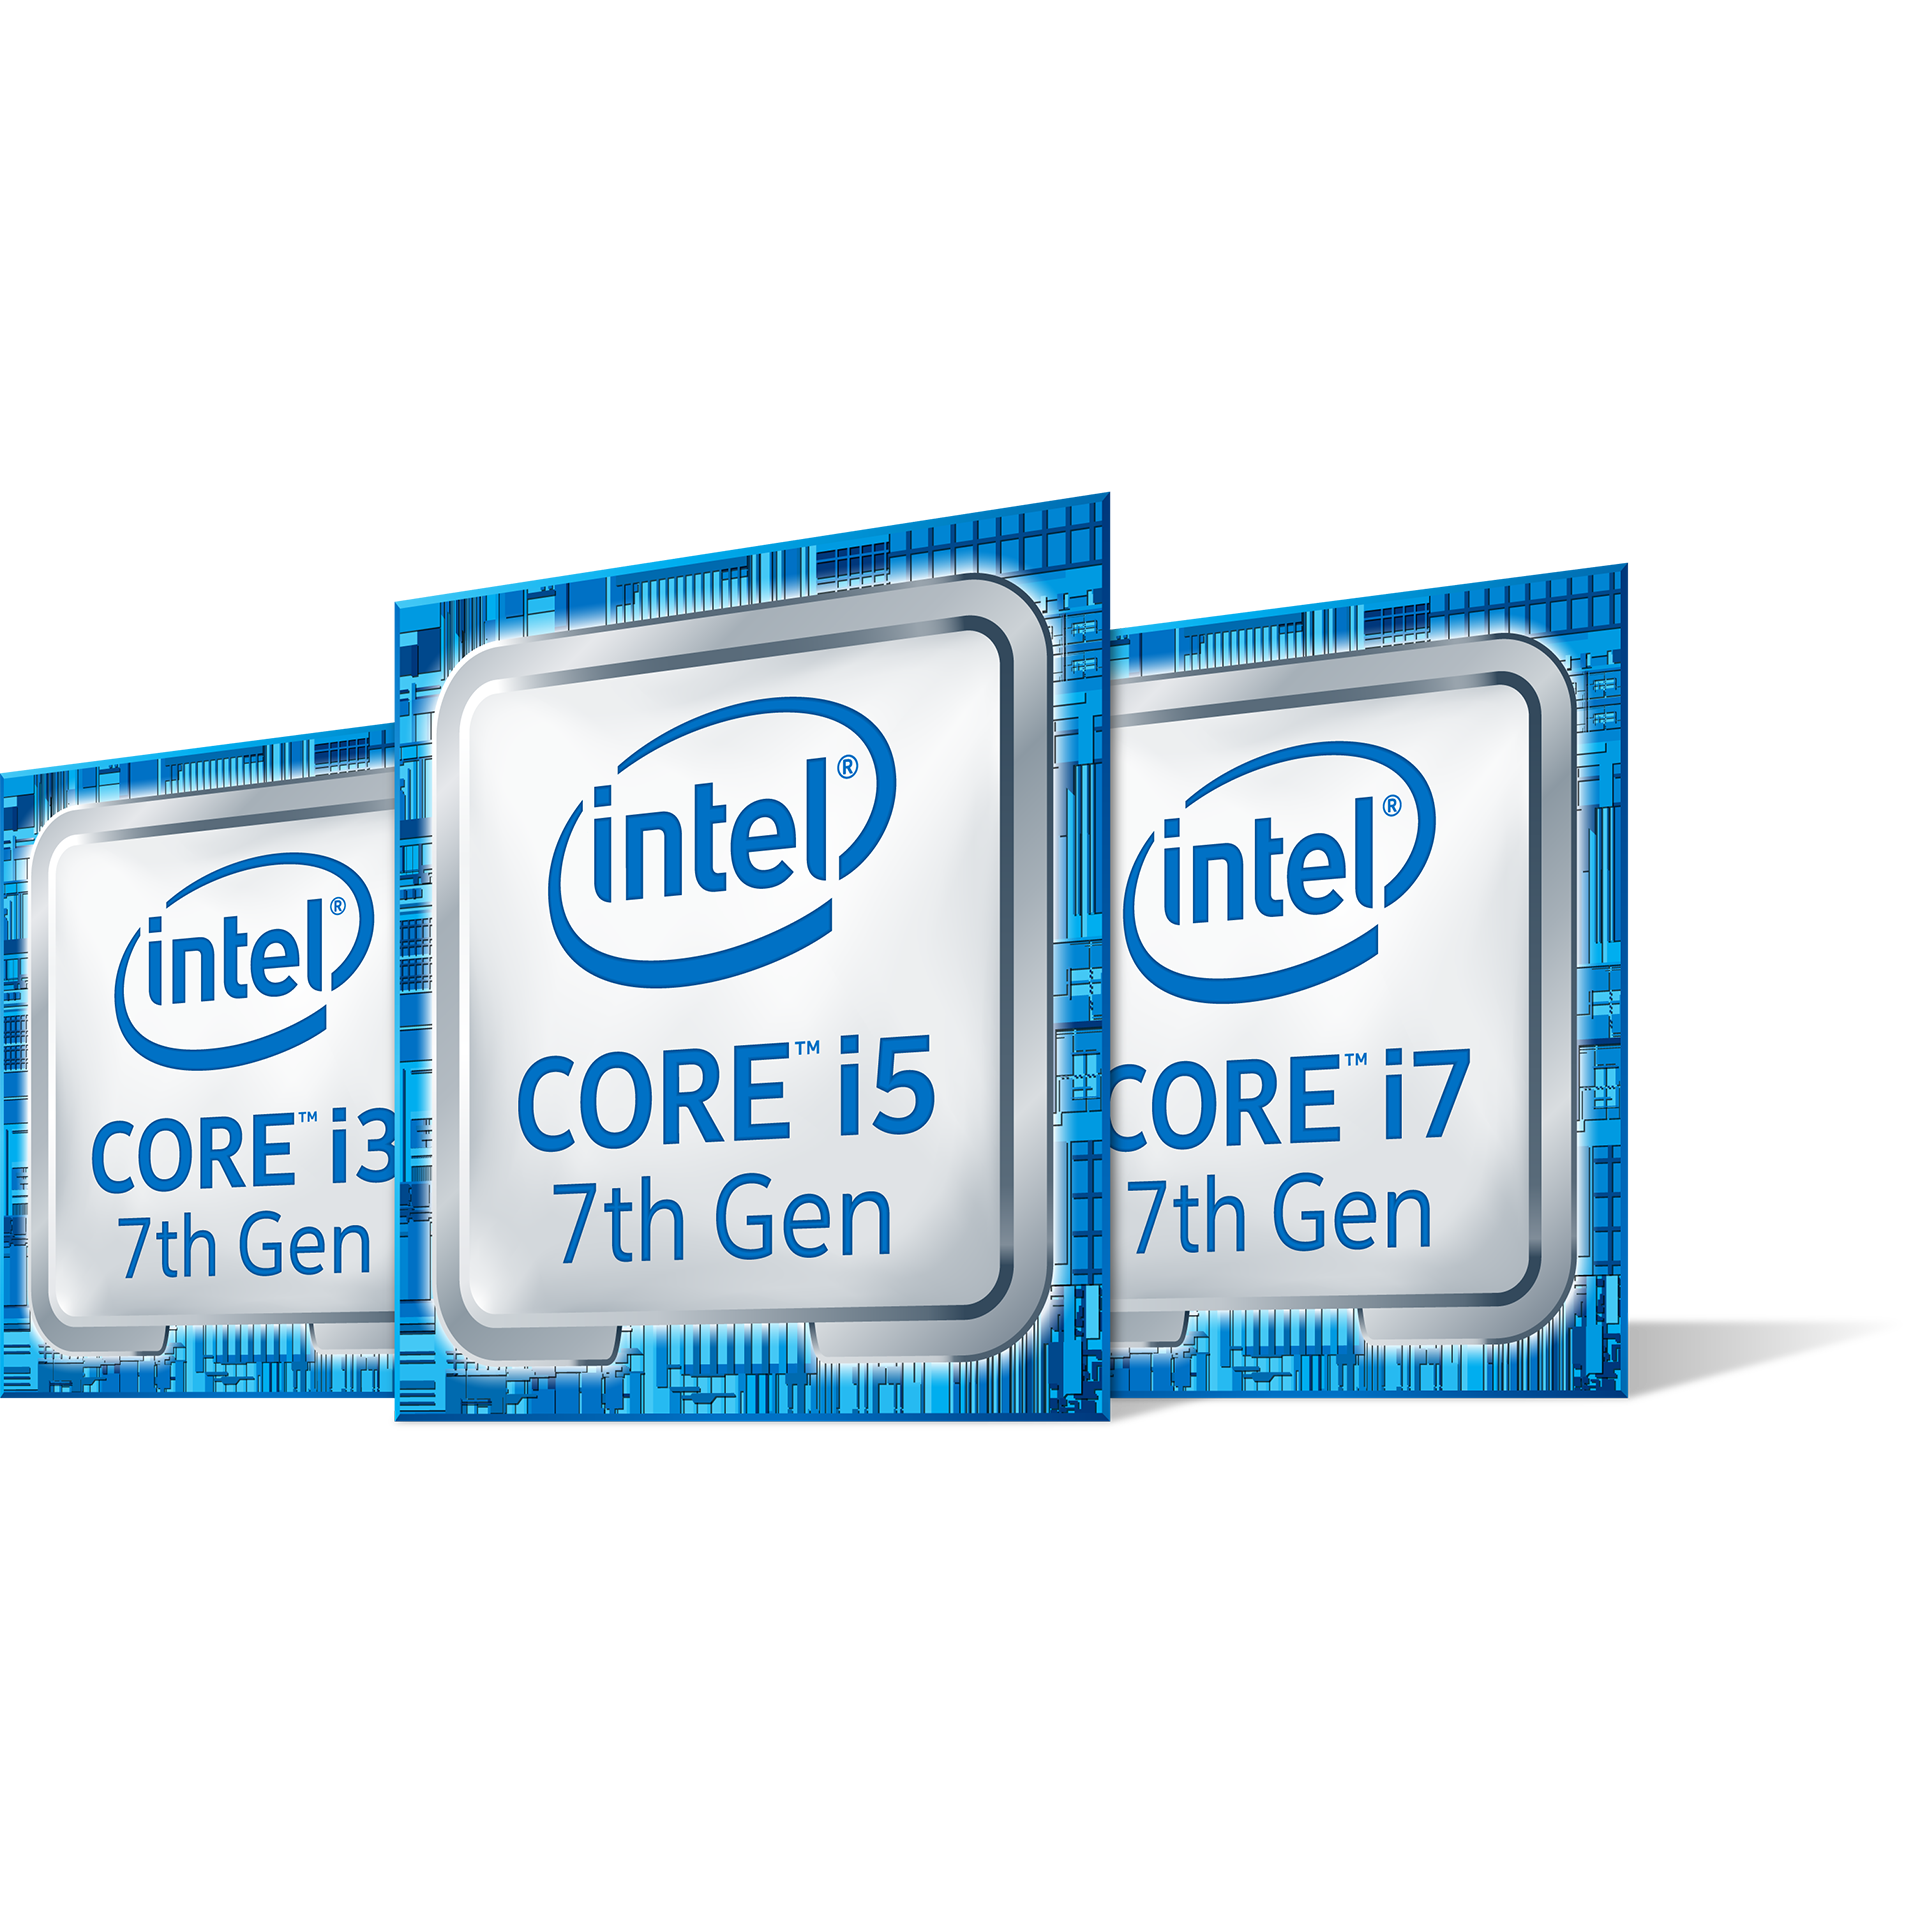 7:e generationens Intel® Core™ processorer